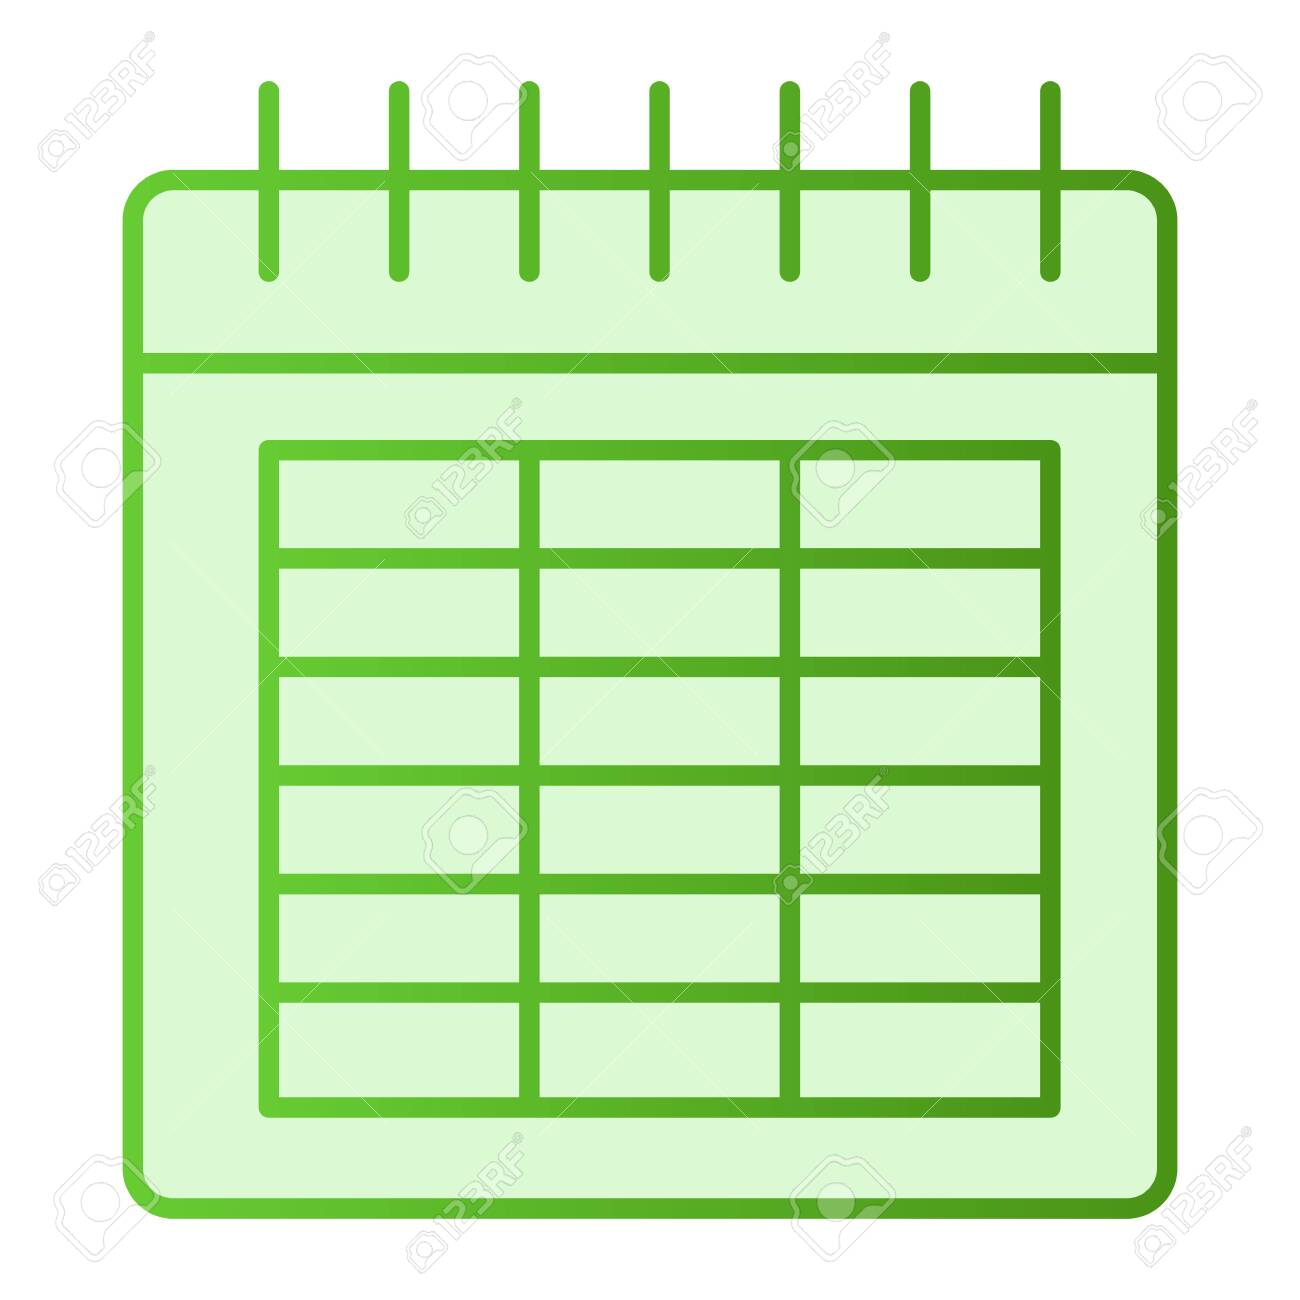 Calendar Flat Icon Date Green Icons In Trendy Flat Style Month Royalty Free Cliparts Vectors And Stock Illustration Image 120811333